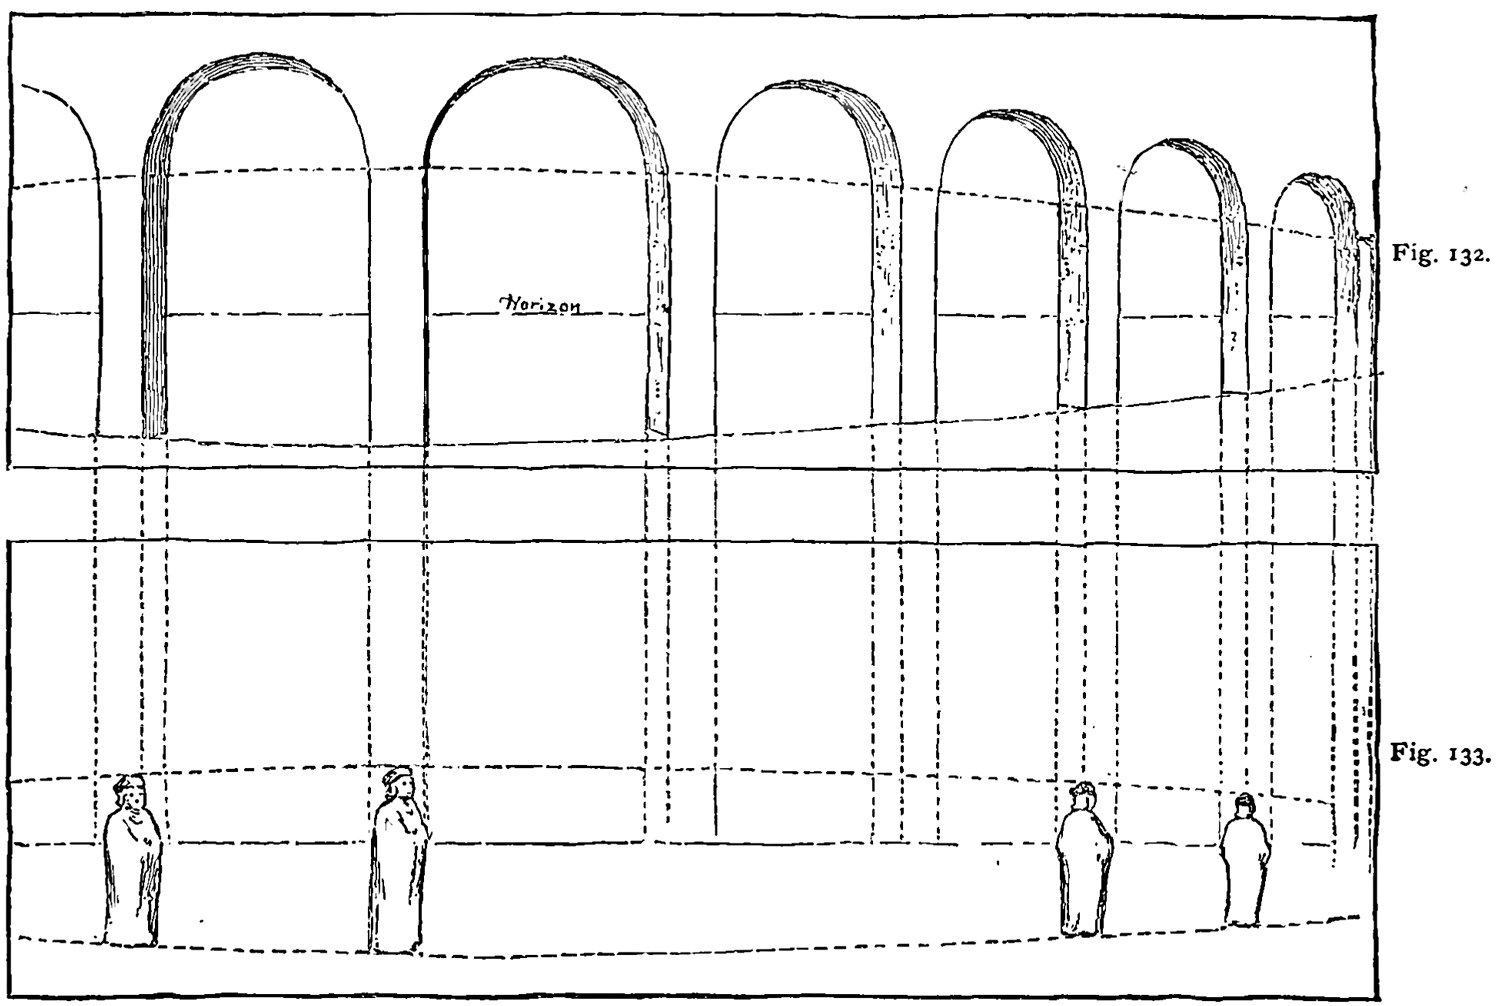 proportions of the figures had been determined by applying the principles of plane perspective